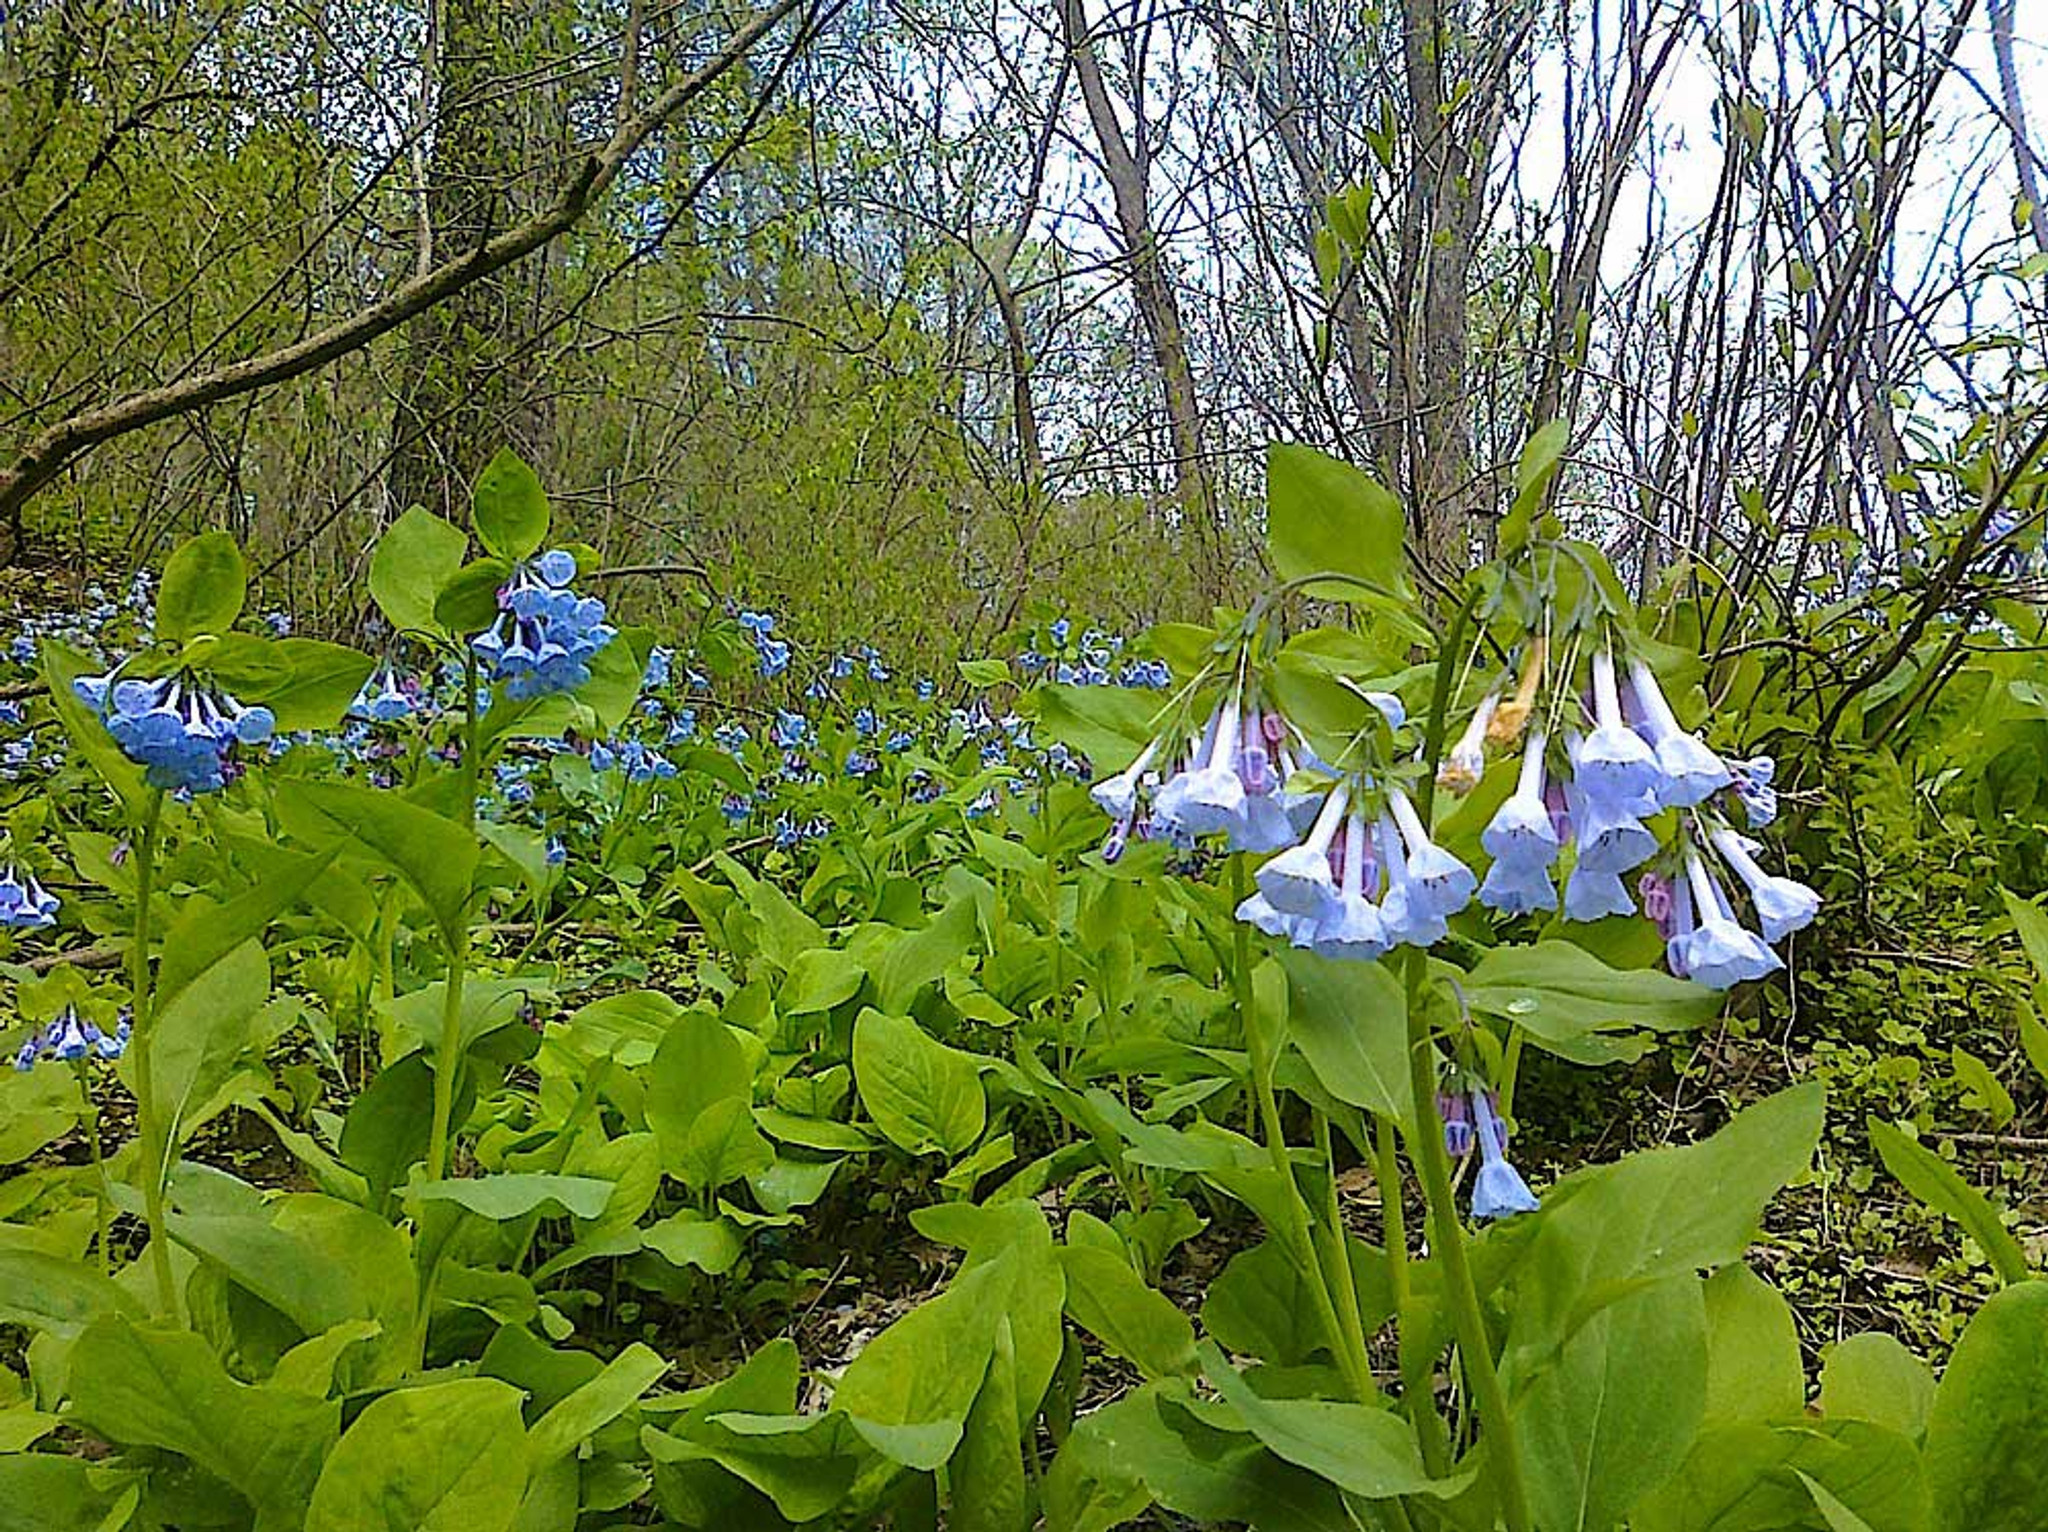 Native Wild Plants - The Easiest Plants To Grow and Flourish Without Lots of Care